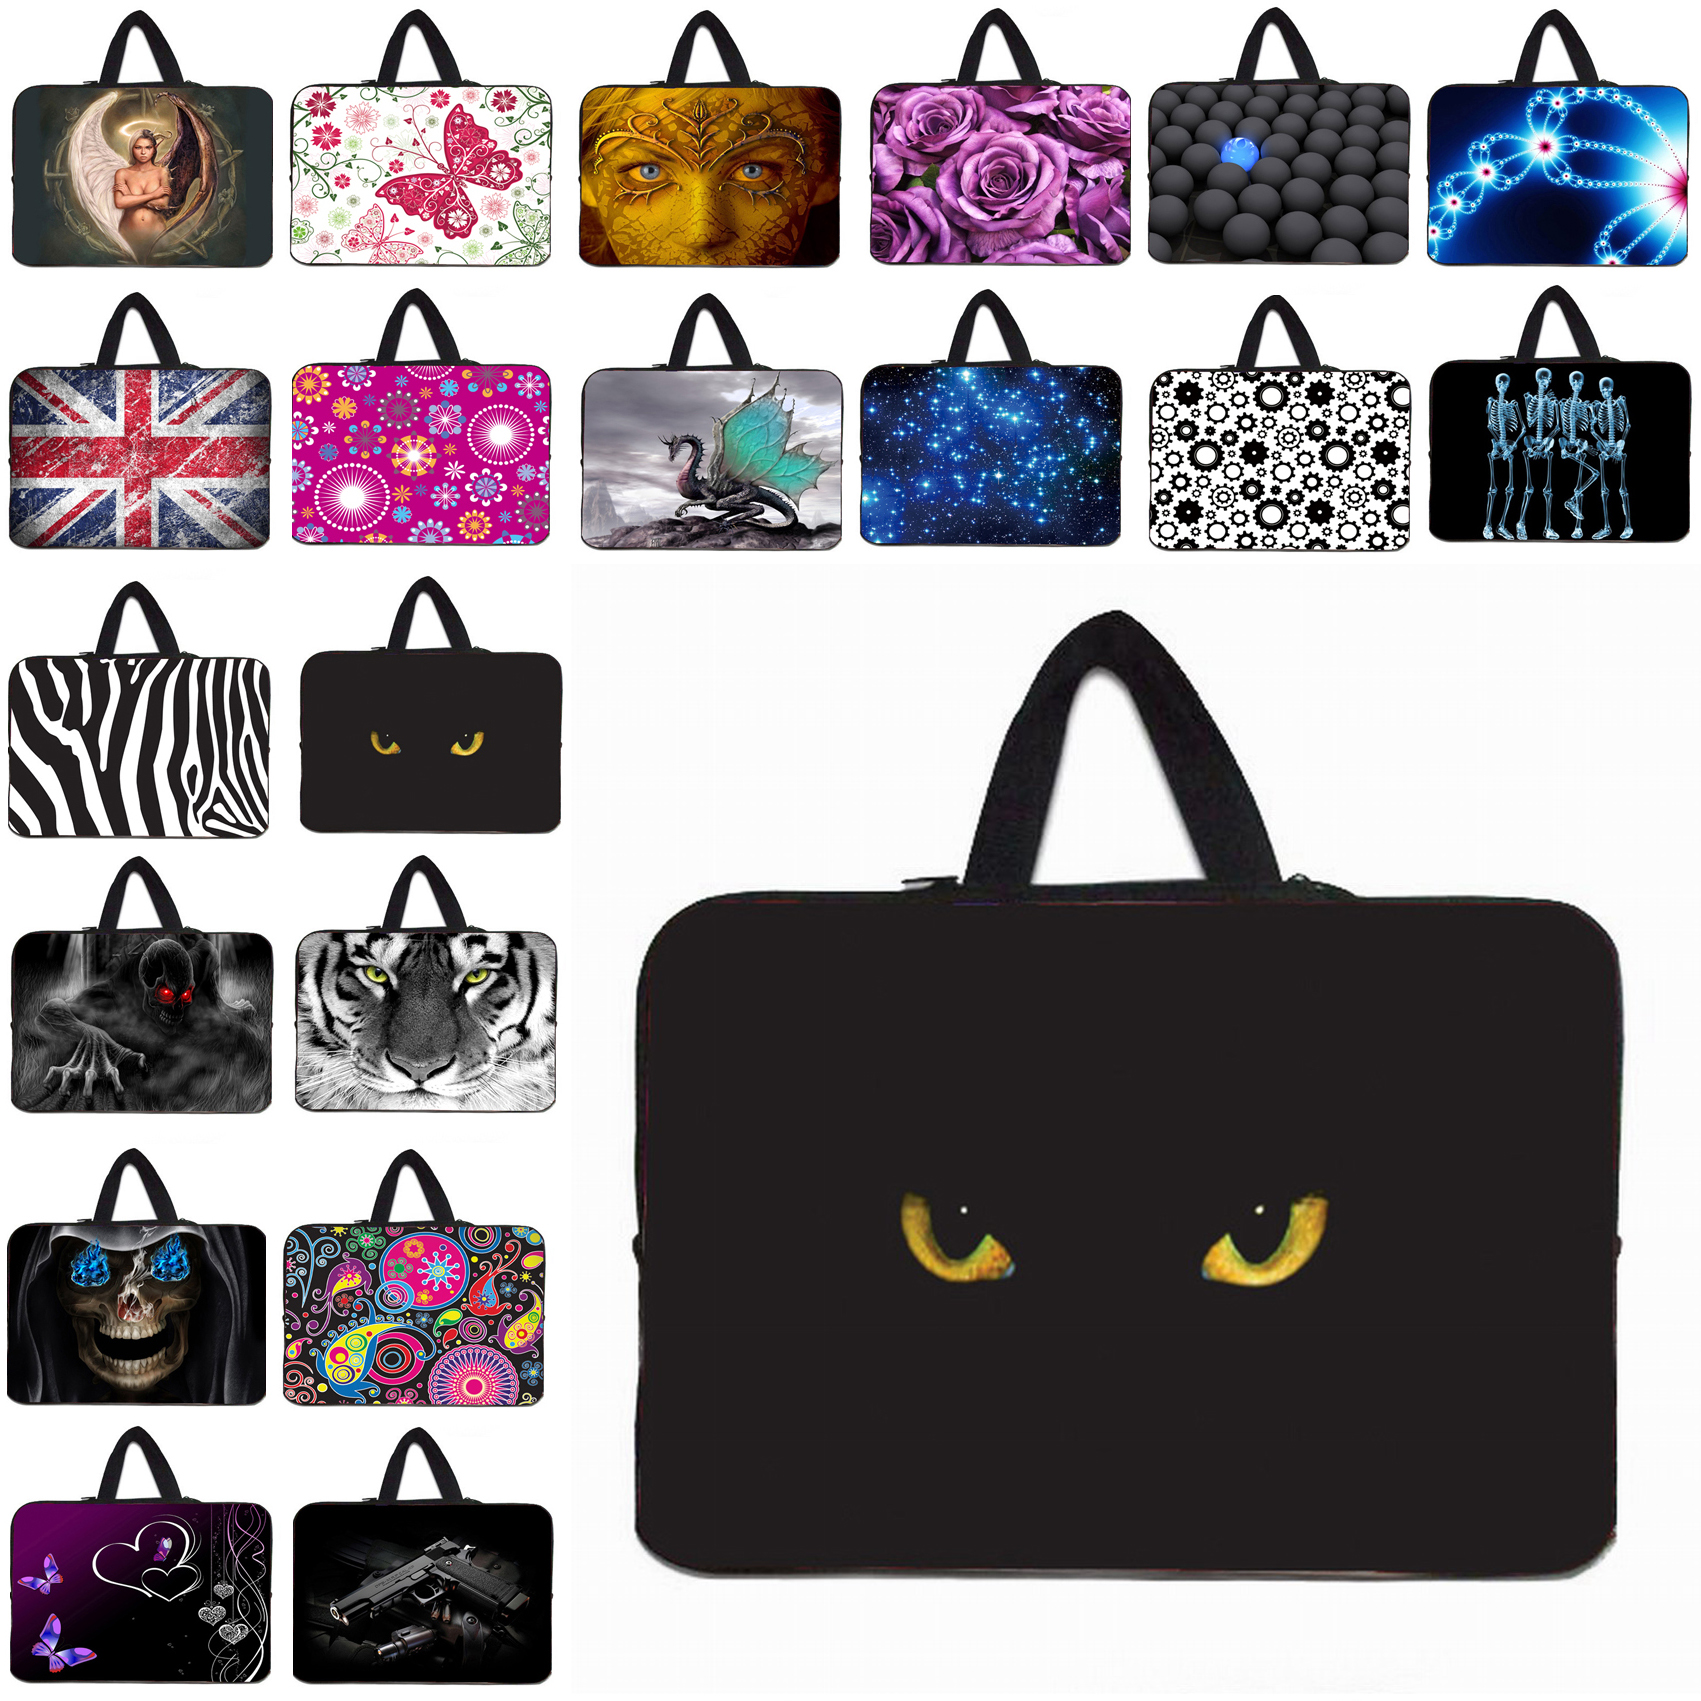 12 Inch Laptops Universal Soft Neoprene Protective Liner Cases & Bags For Apple Macbook Air 11.6 12.1 Notebook Fashion Bag